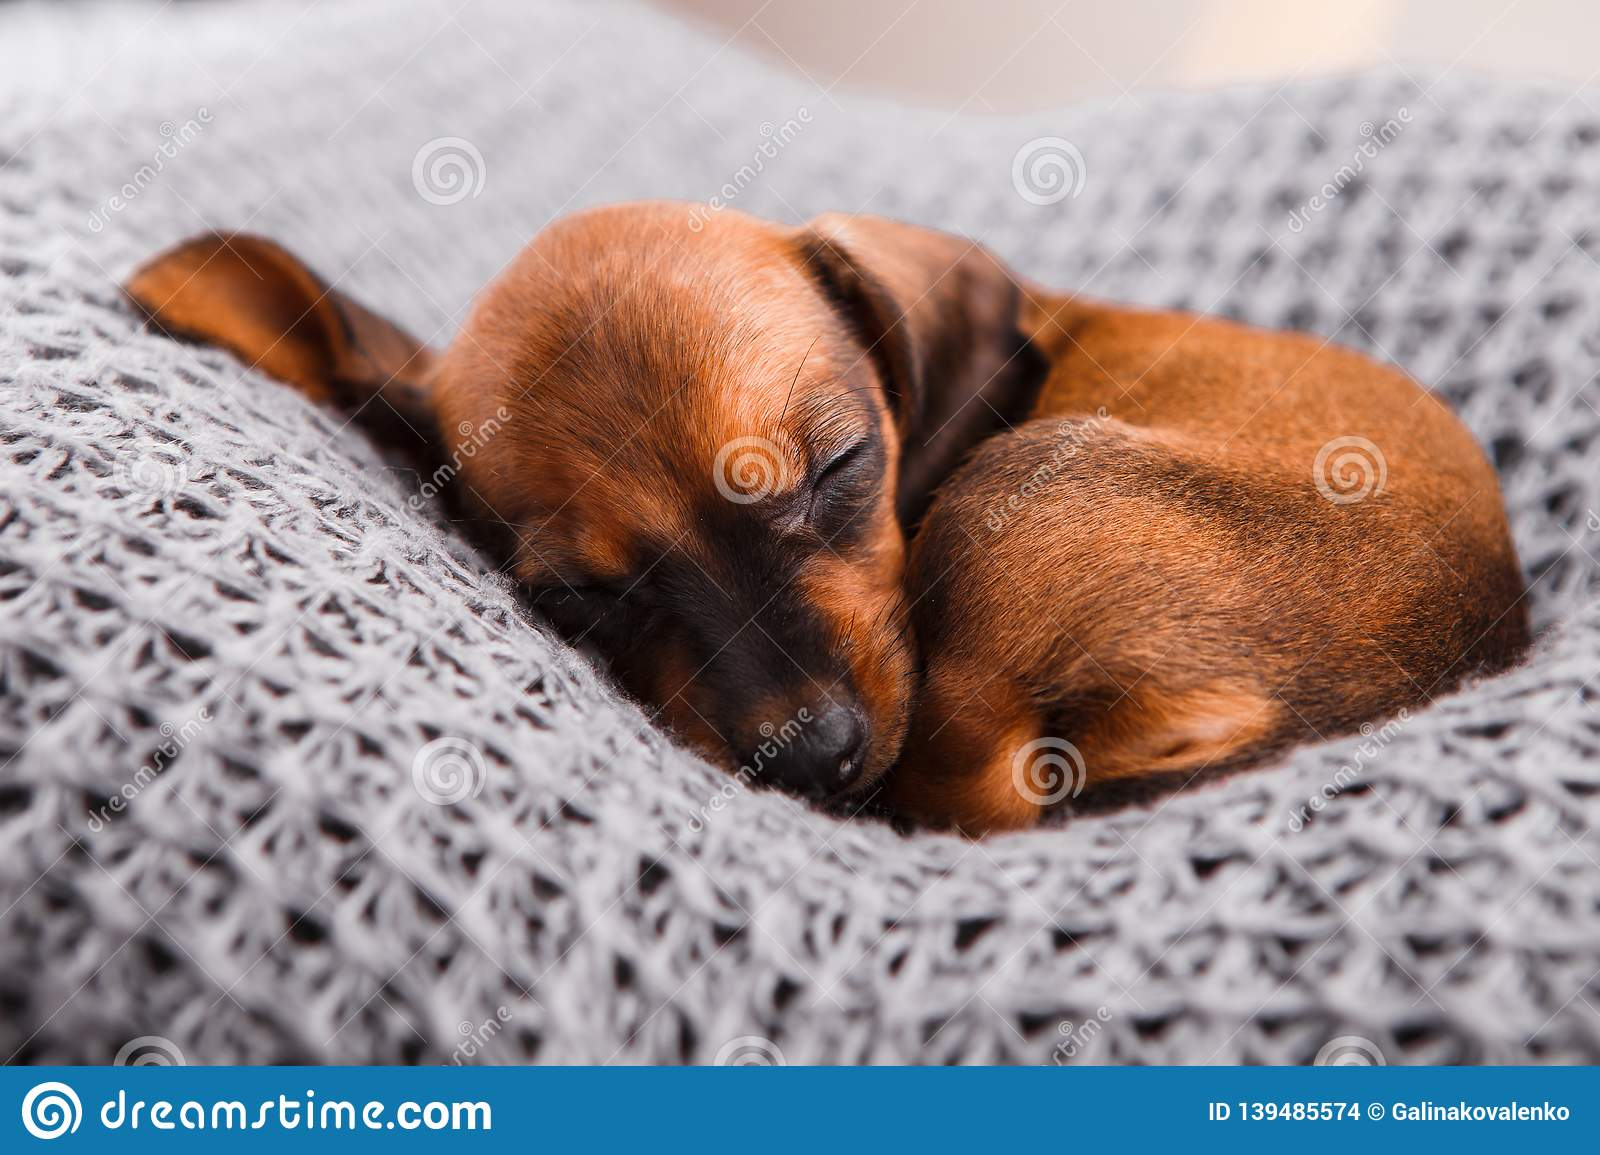 Dachshund Puppy Sleeping In Her Bed Stock Photo Image Of Baby Black 139485574